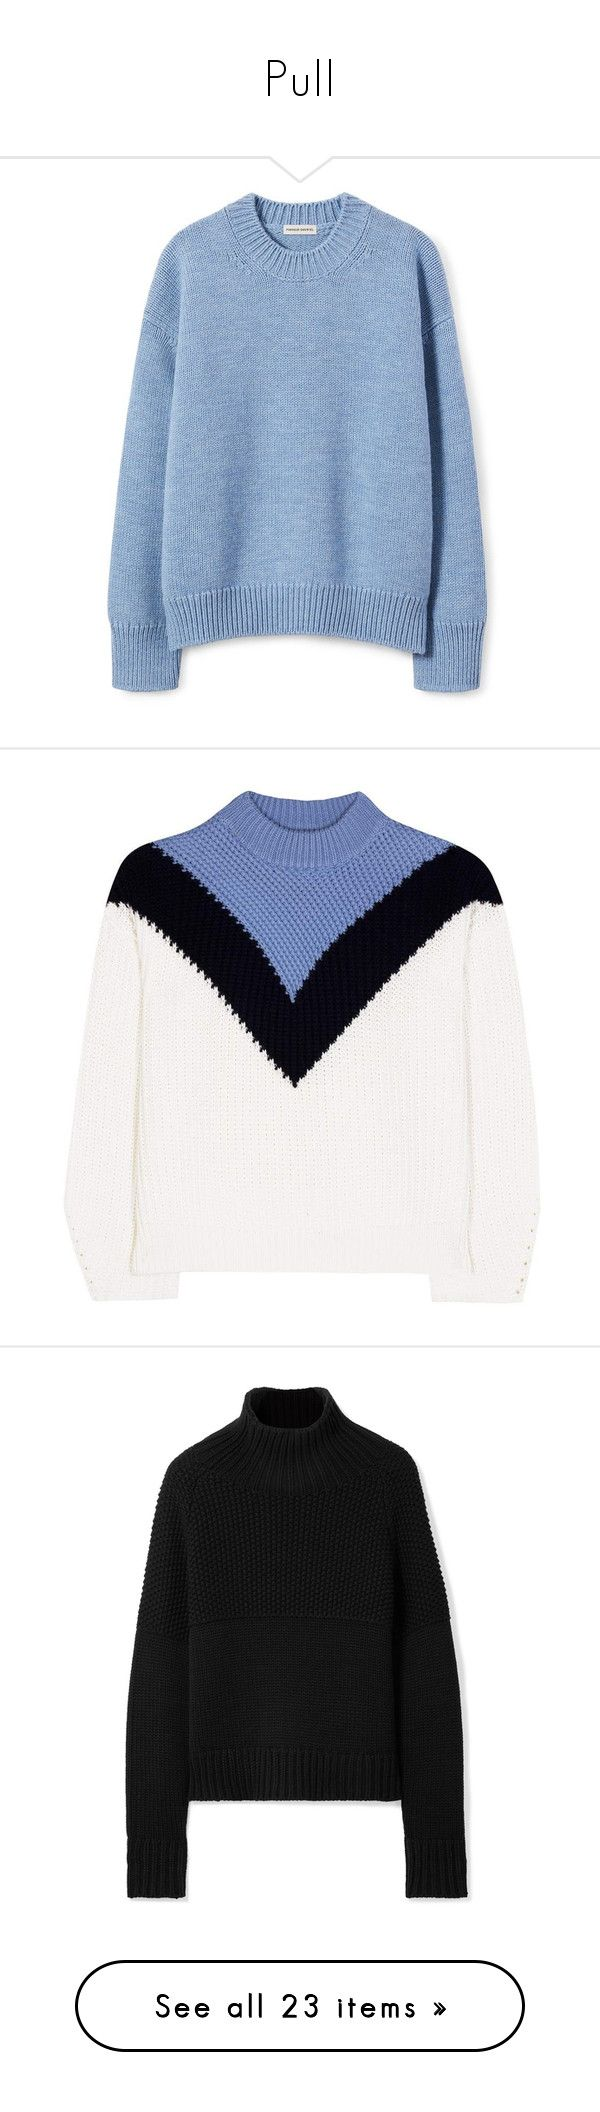 """Pull"" by eleonore-plot ❤ liked on Polyvore featuring tops, sweaters, blue oversized sweater, wool sweater, over sized sweaters, crewneck sweaters, crew sweater, long sleeves, white and blue"